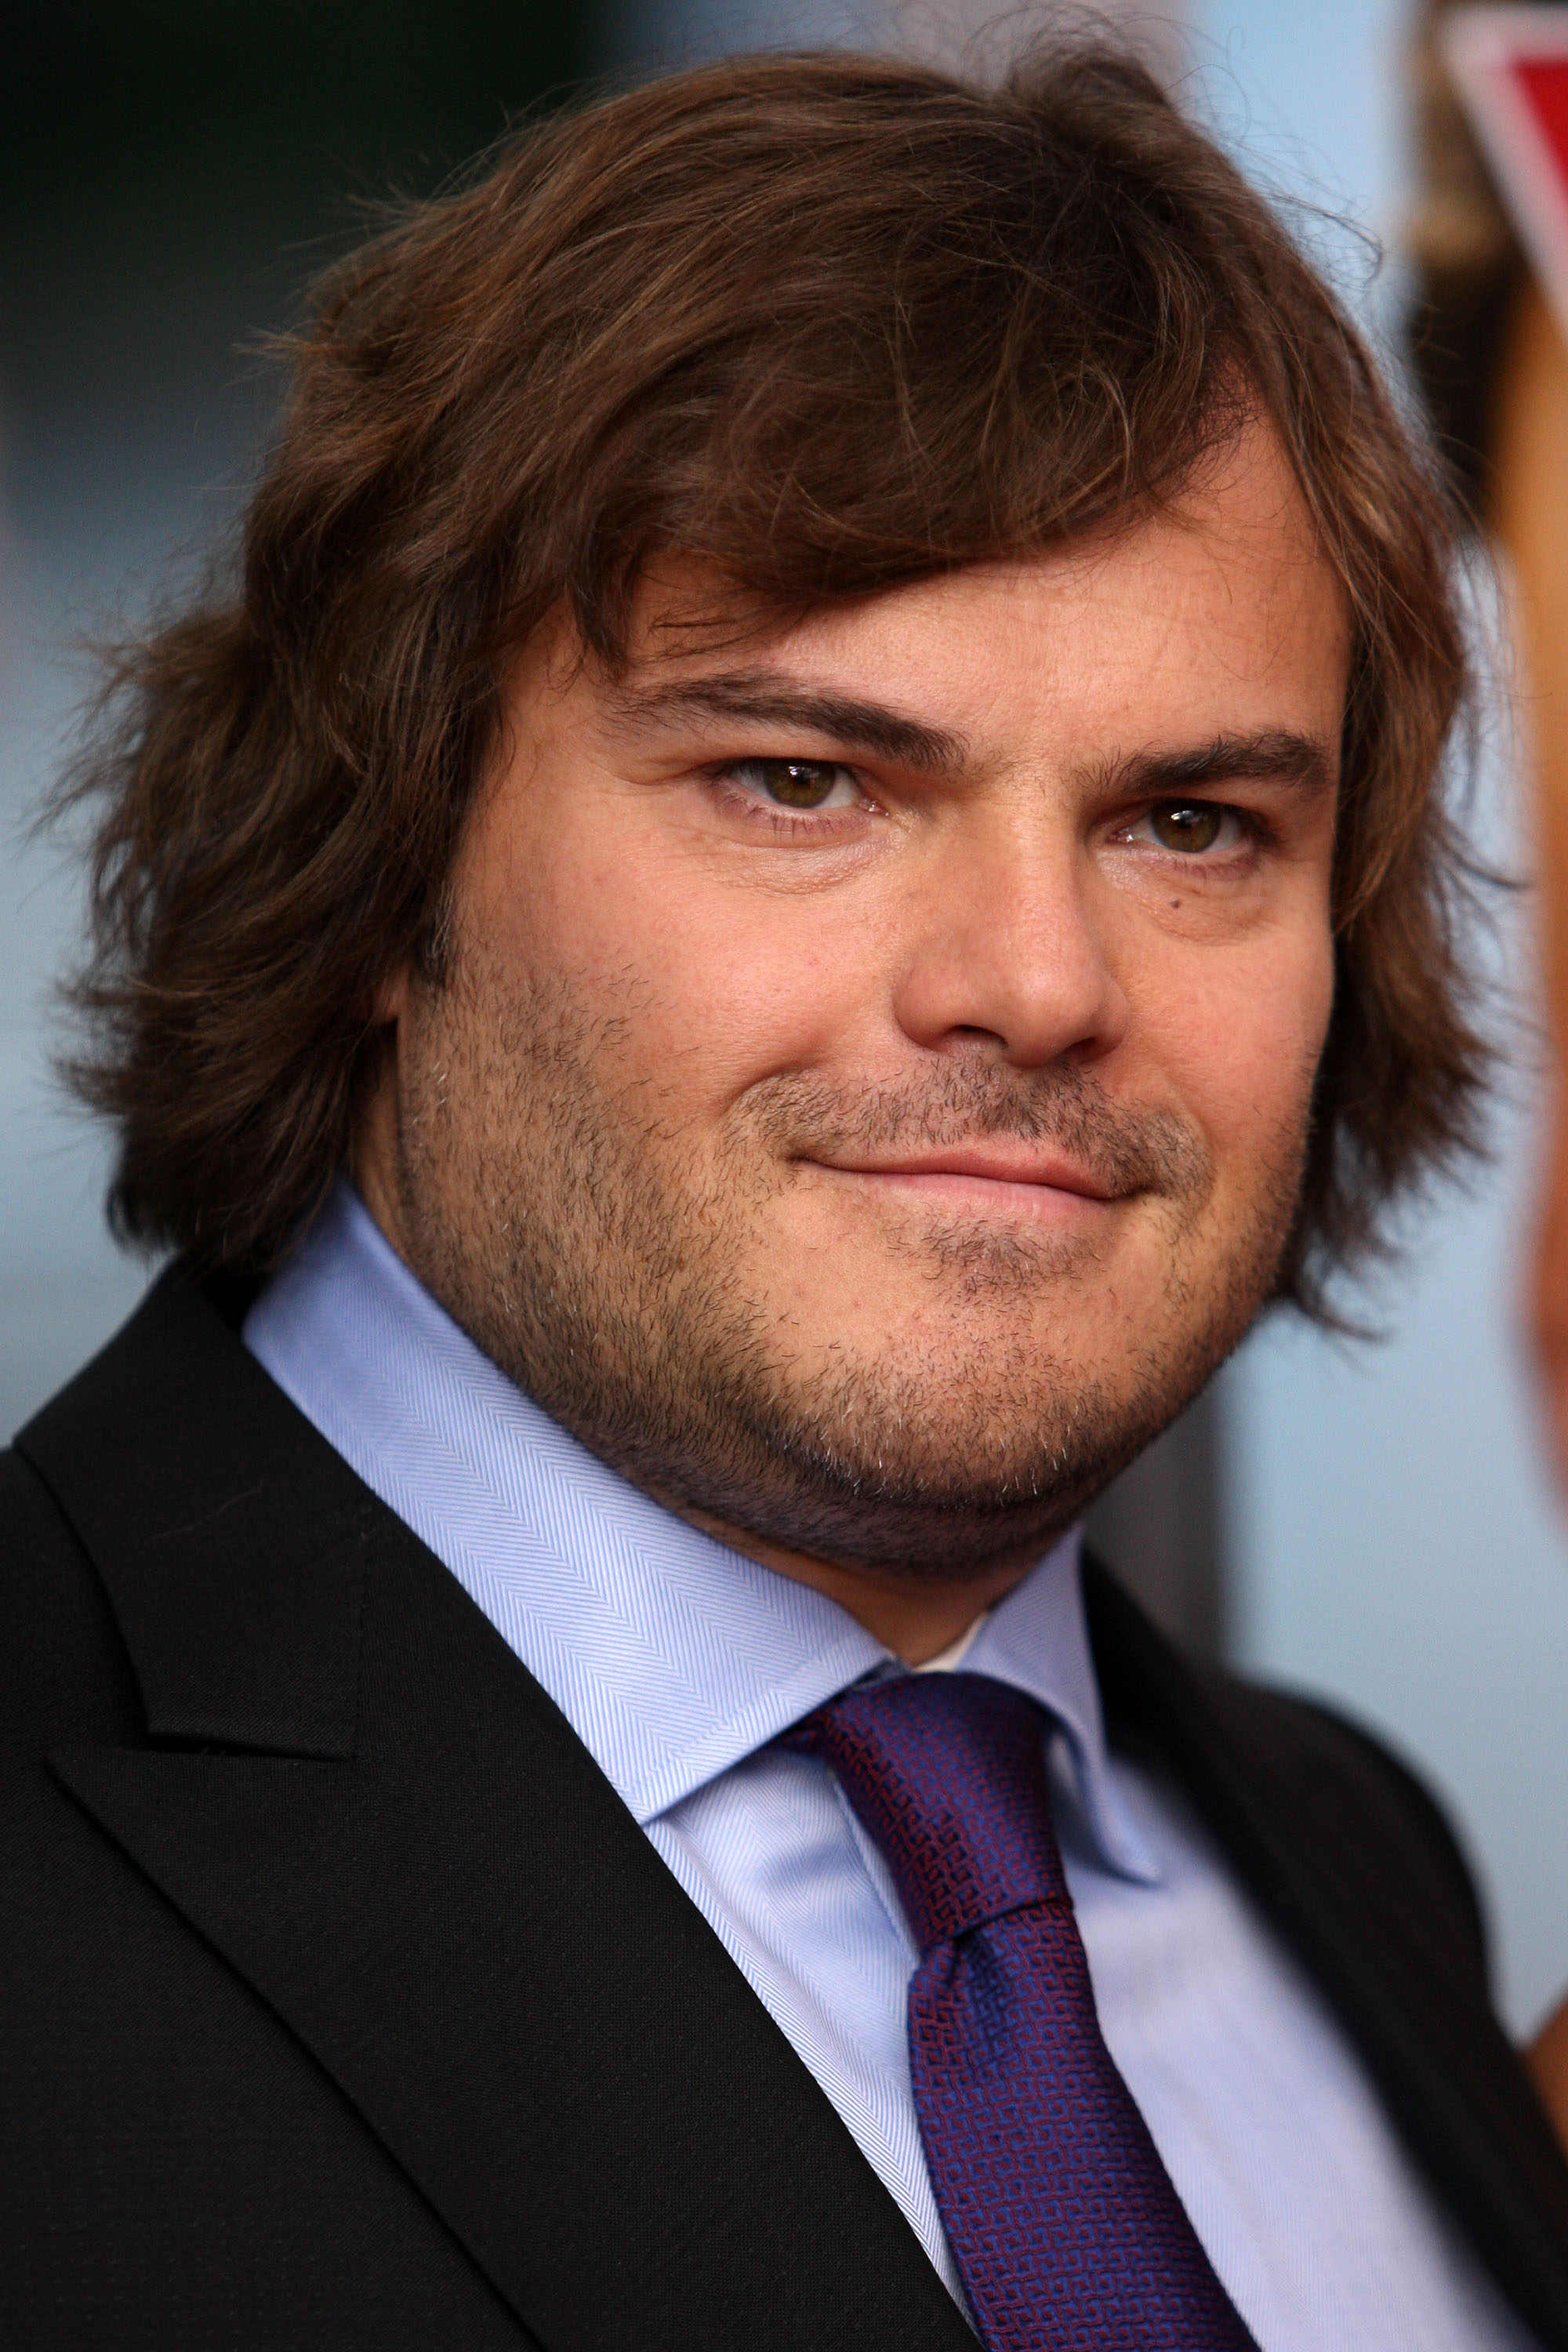 """NEW YORK - JUNE 15: Actor Jack Black attends the Columbia Pictures world premiere of """"Year One"""" at AMC Lincoln Square on June 15, 2009 in New York City. (Photo by Bryan Bedder/Getty Images)"""